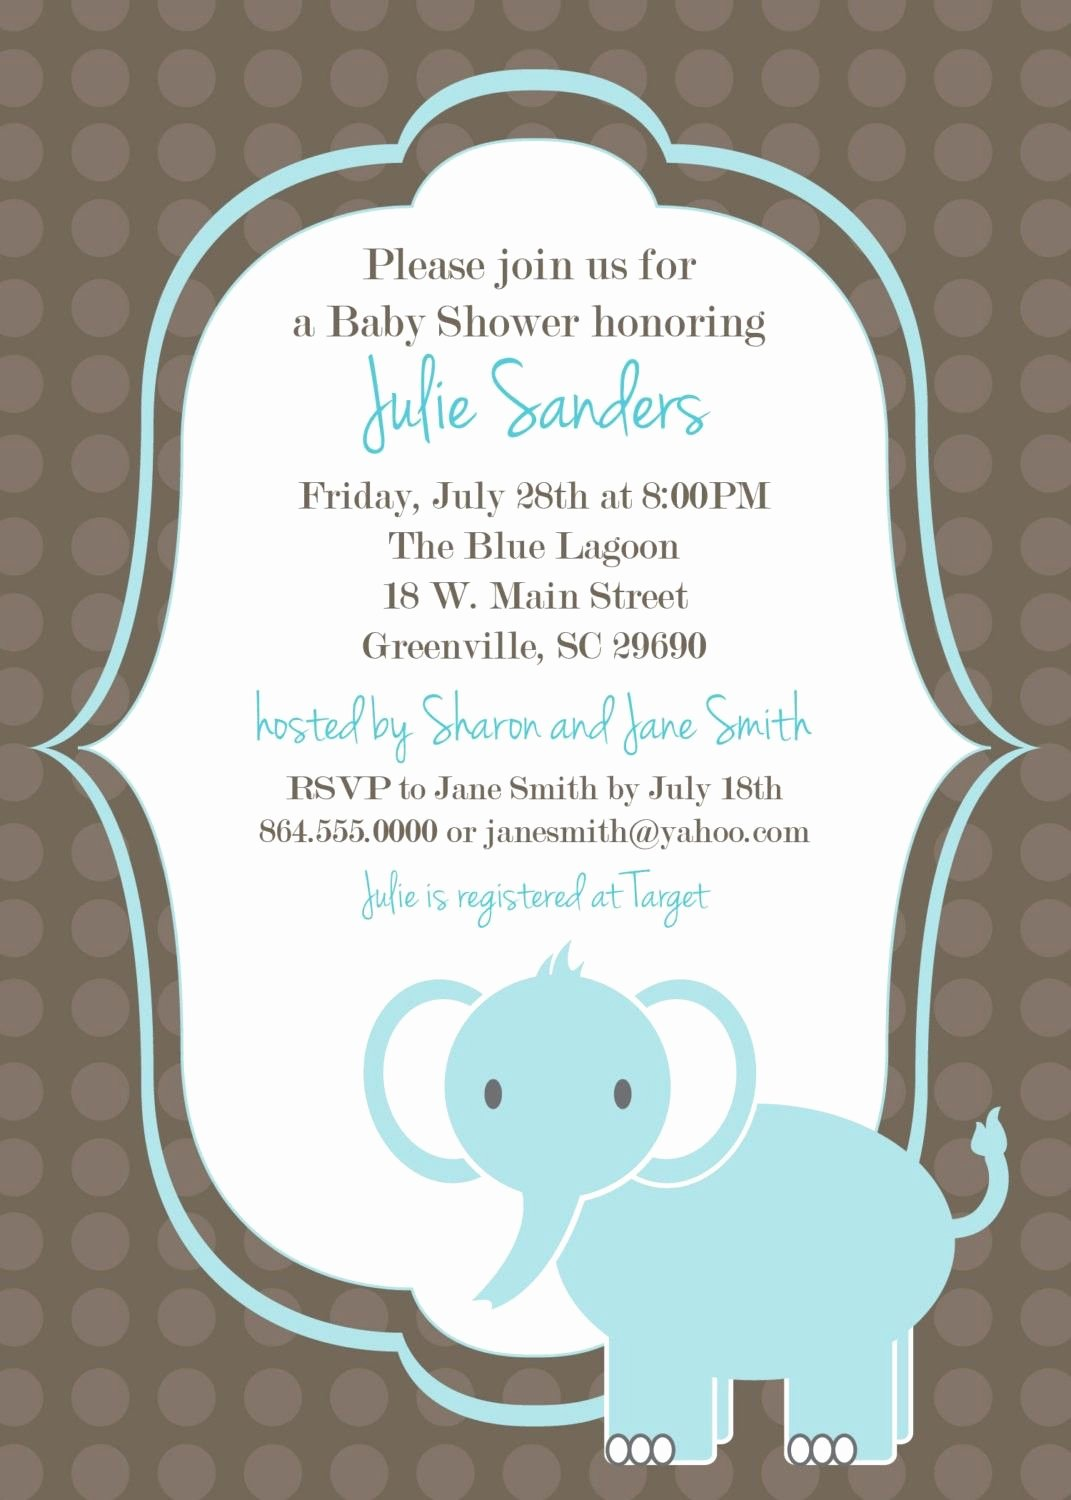 Blank Baby Shower Invitation Template Inspirational Download Free Template Got the Free Baby Shower